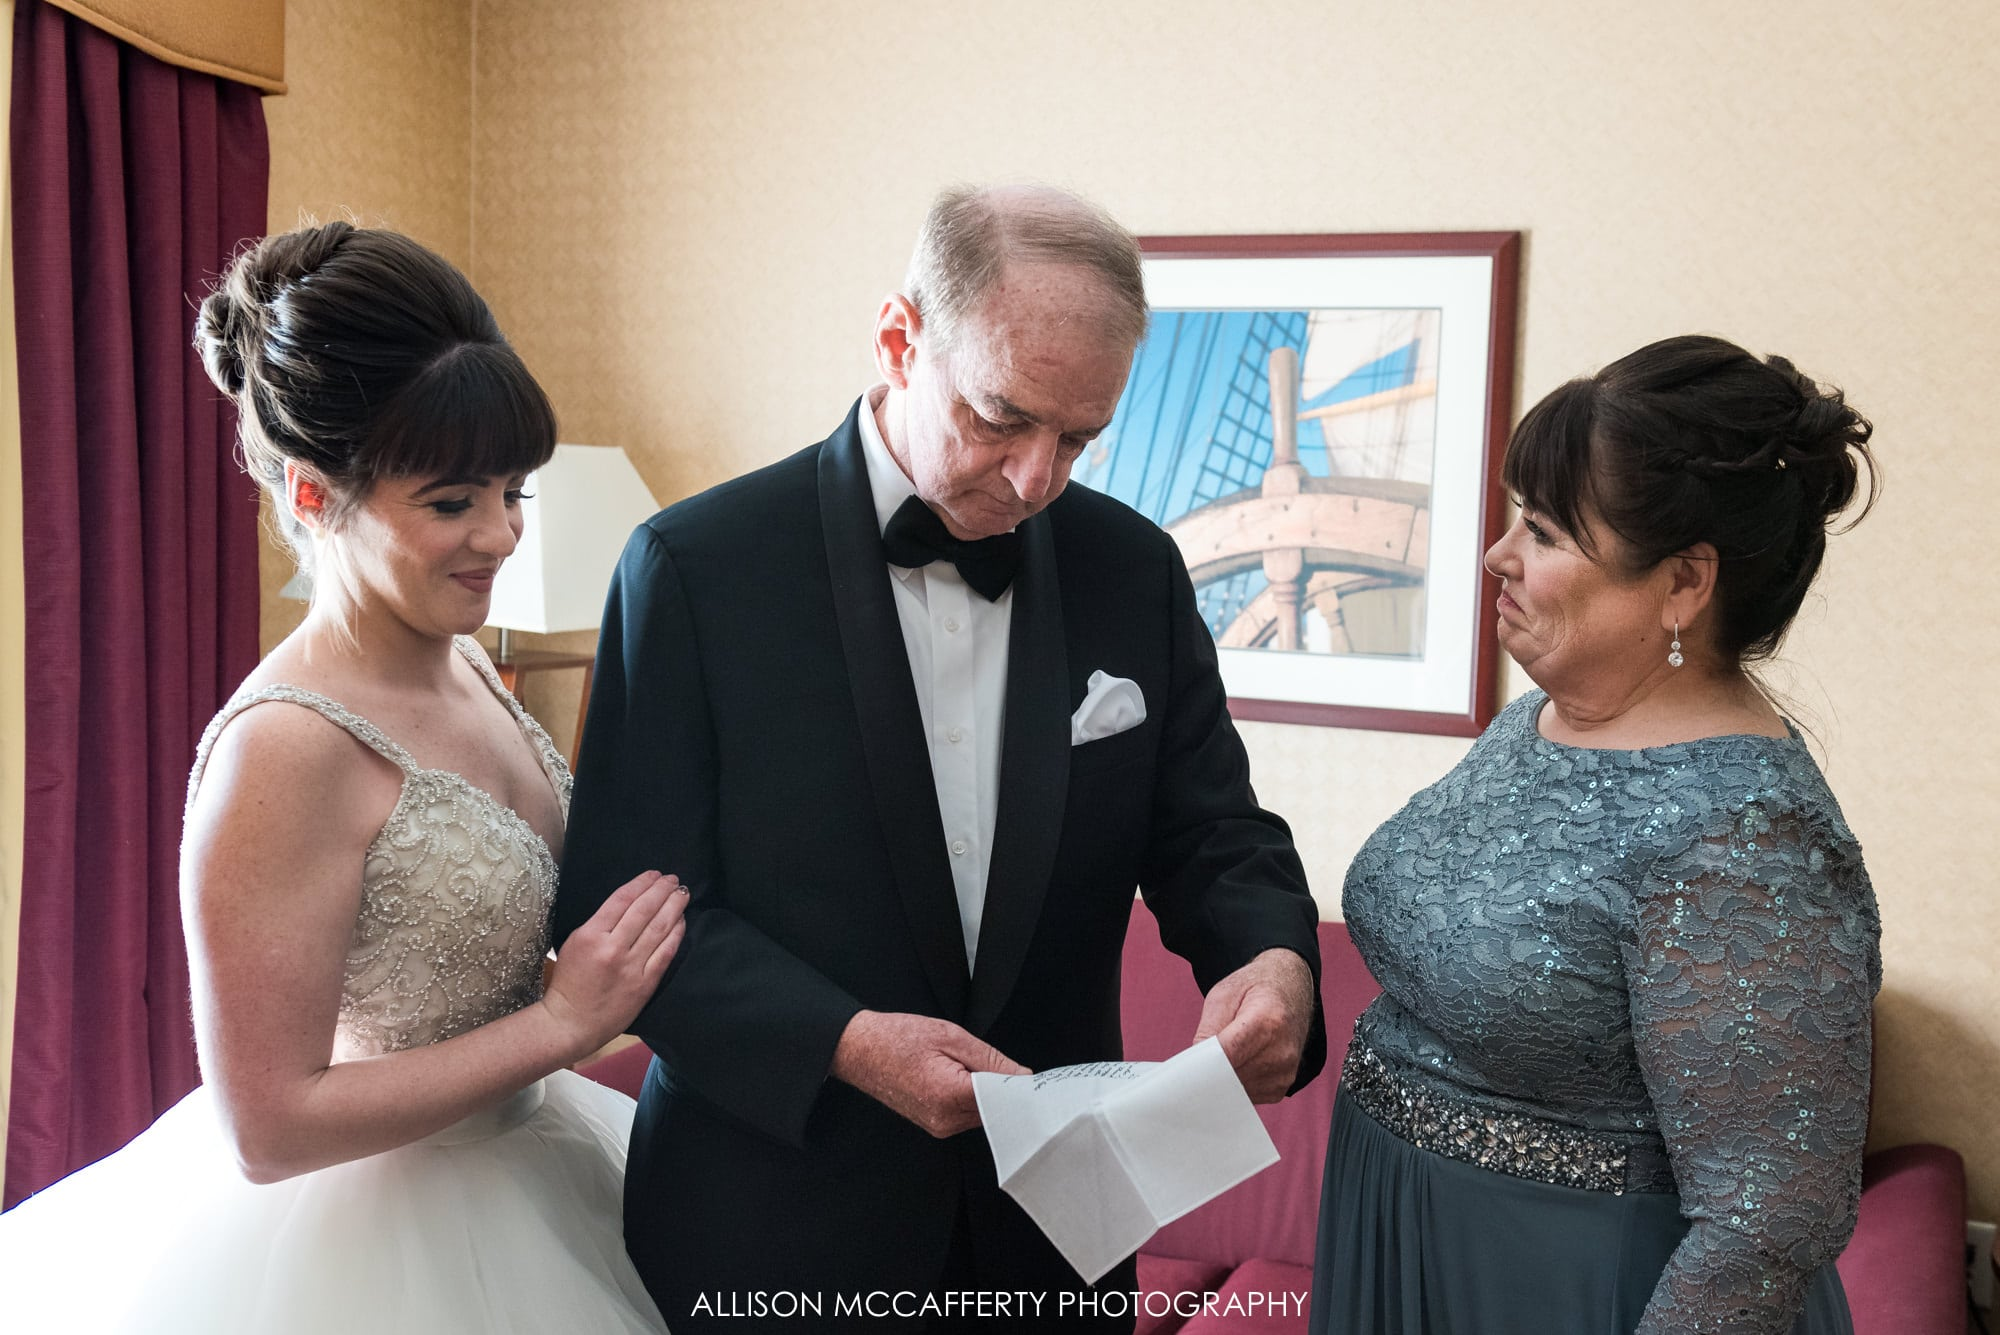 Bride giving her parents a gift before the wedding